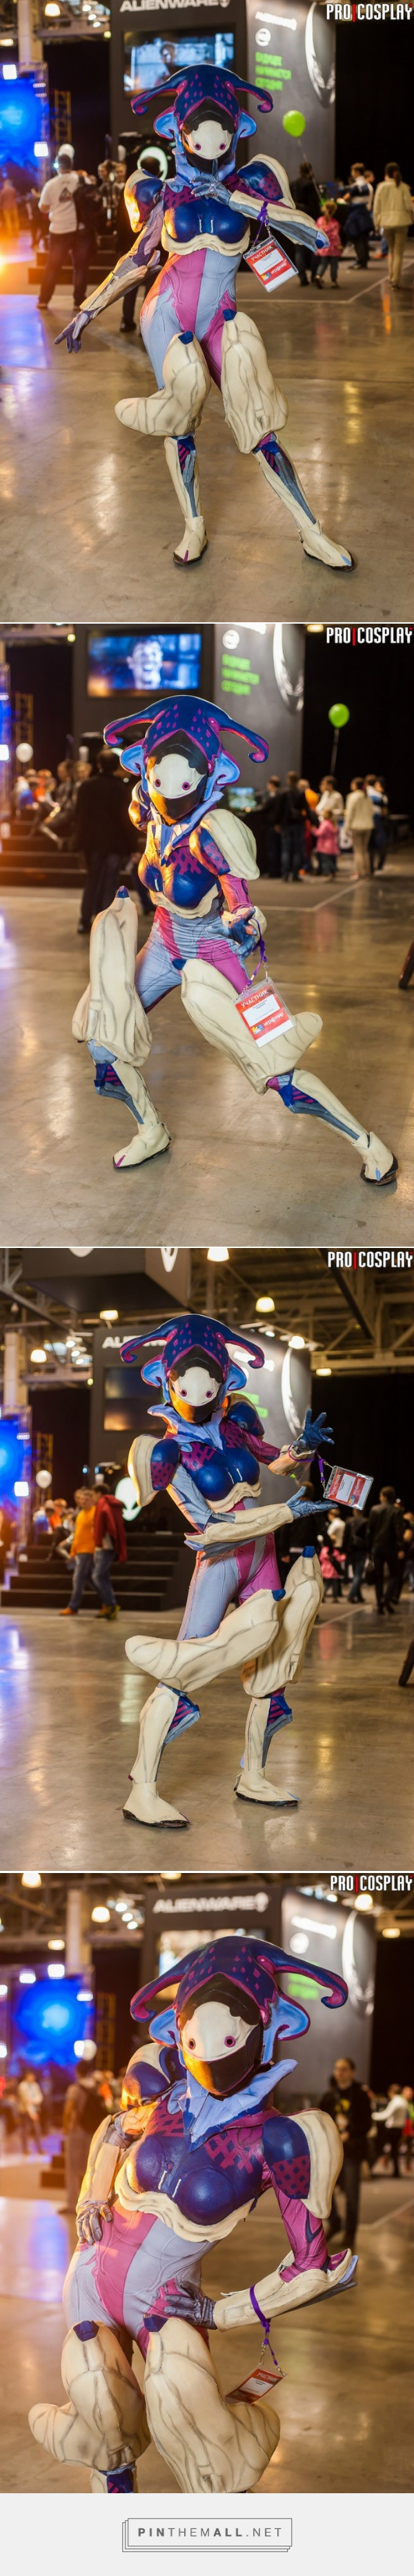 Pin by Plagueratking59 on warframe | Cosplay, Warframe art